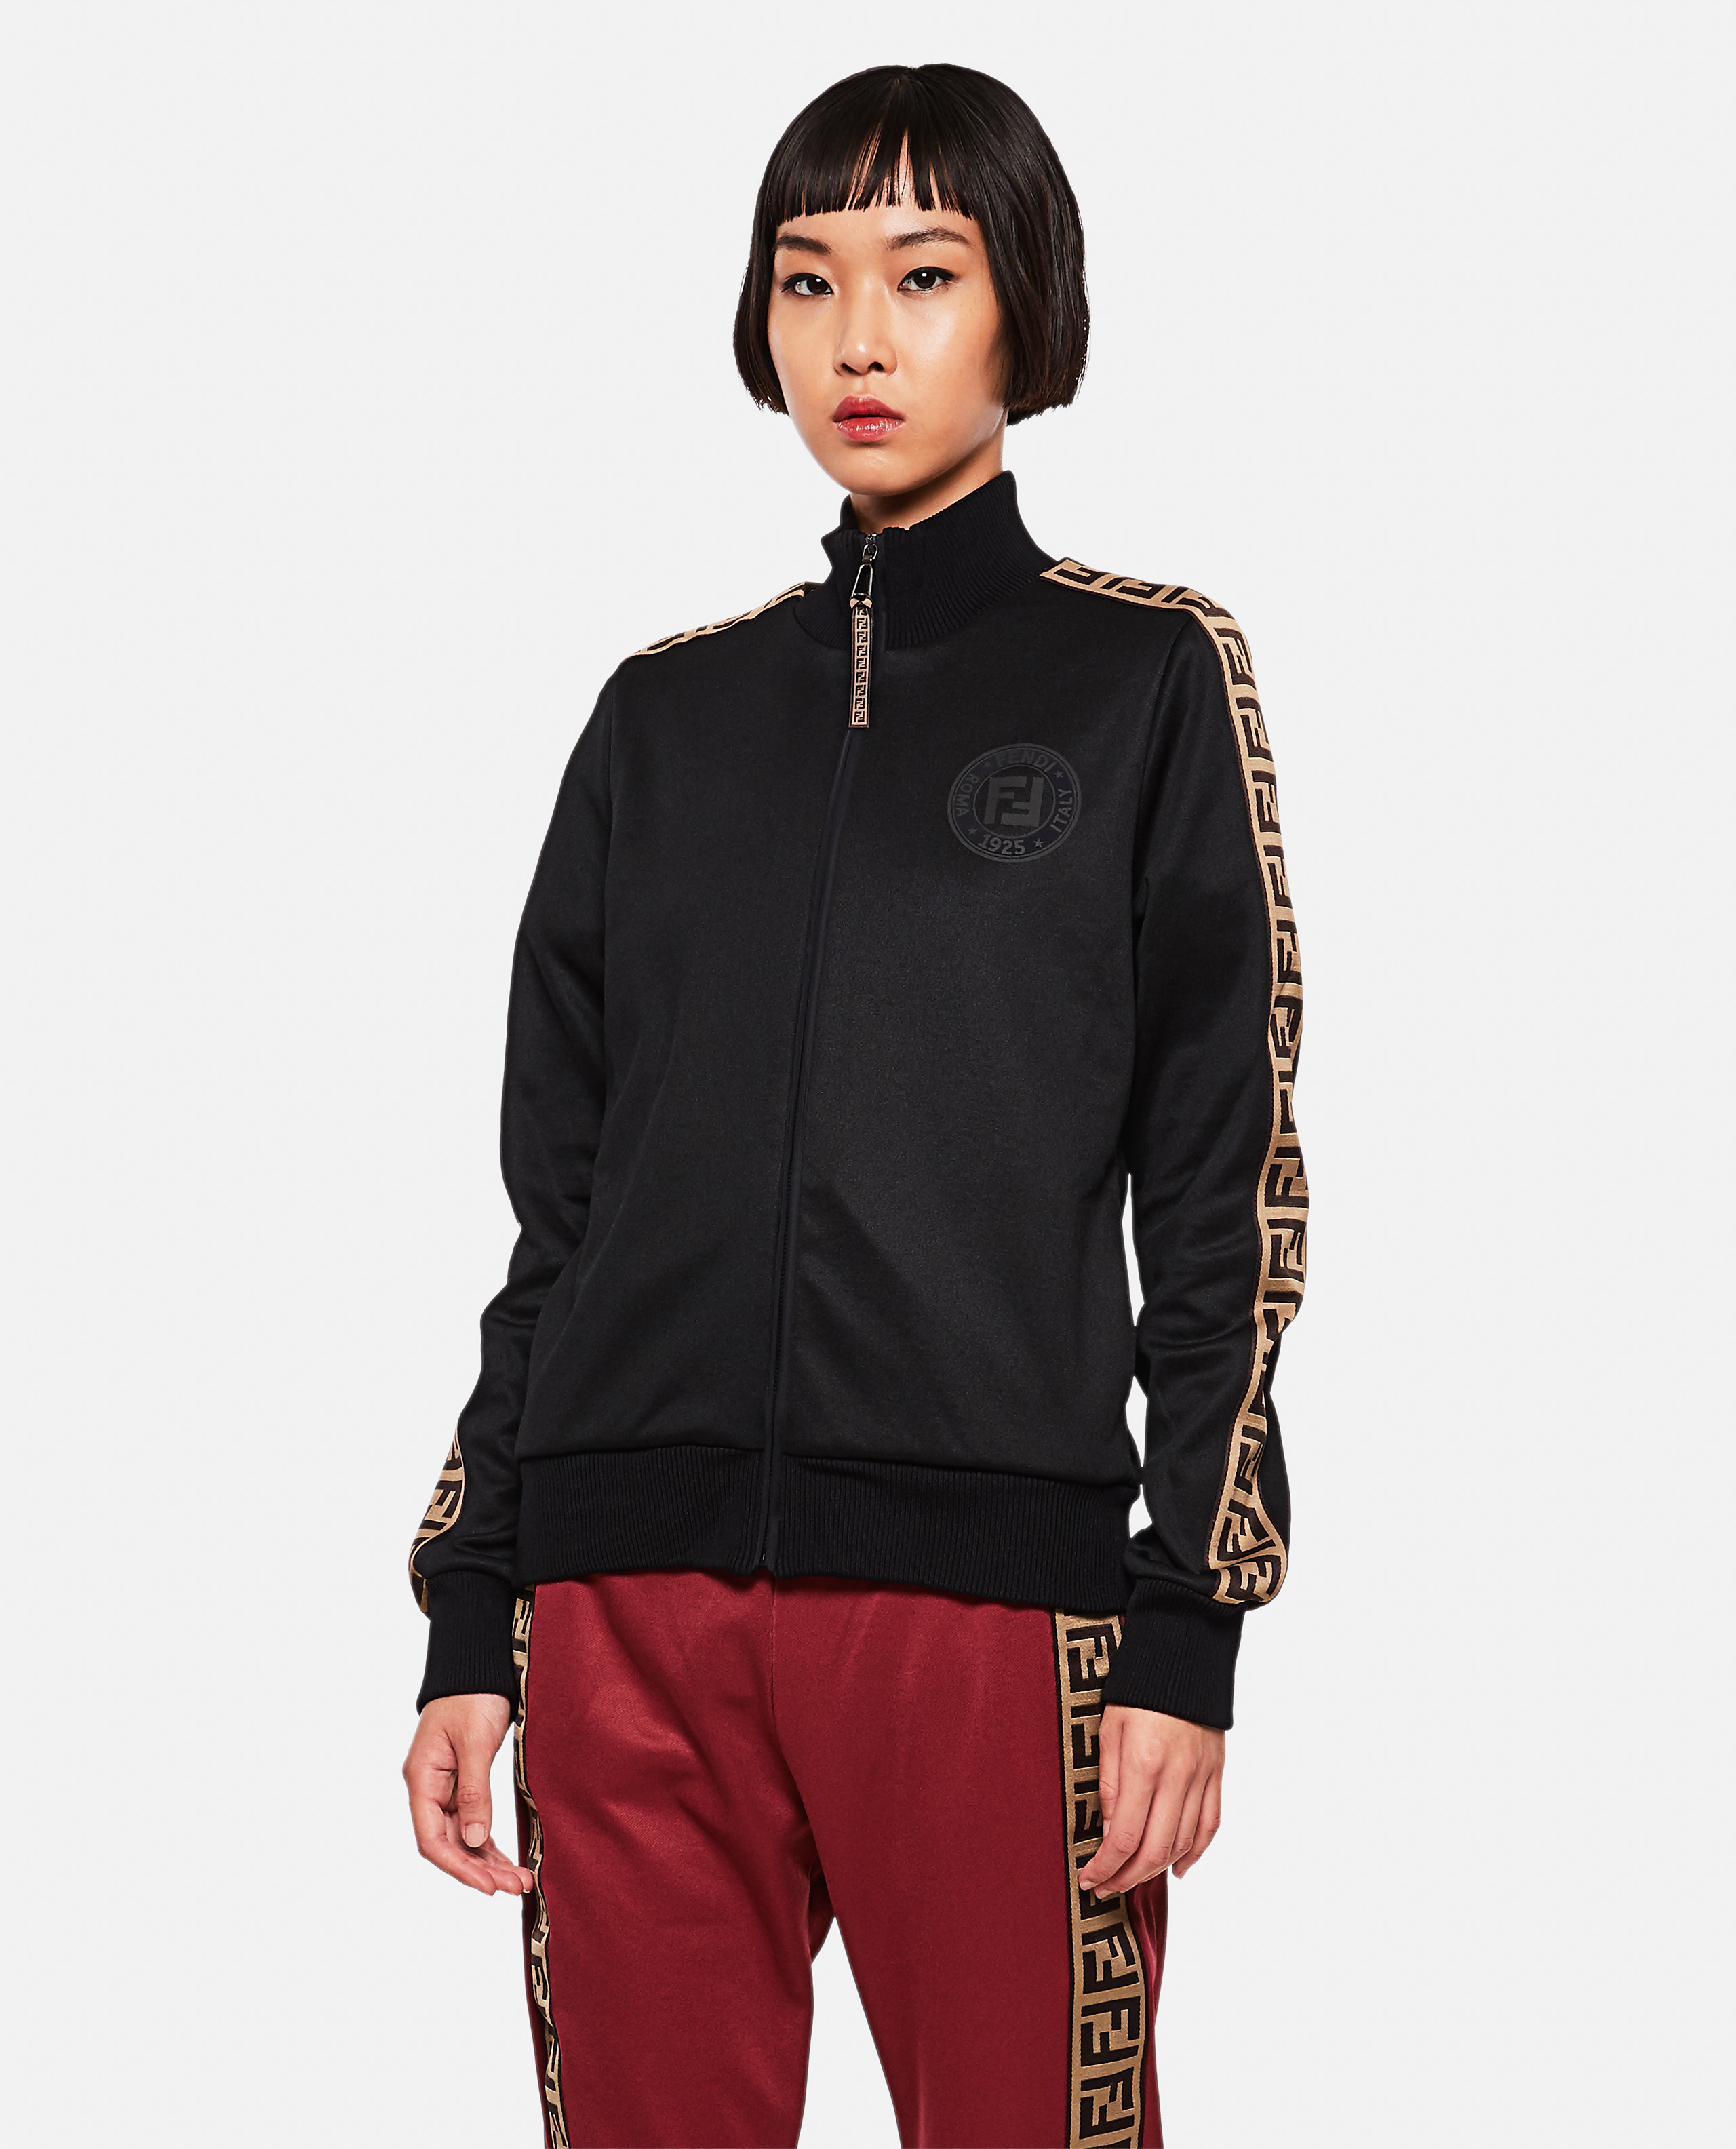 Sports jacket with FF motif